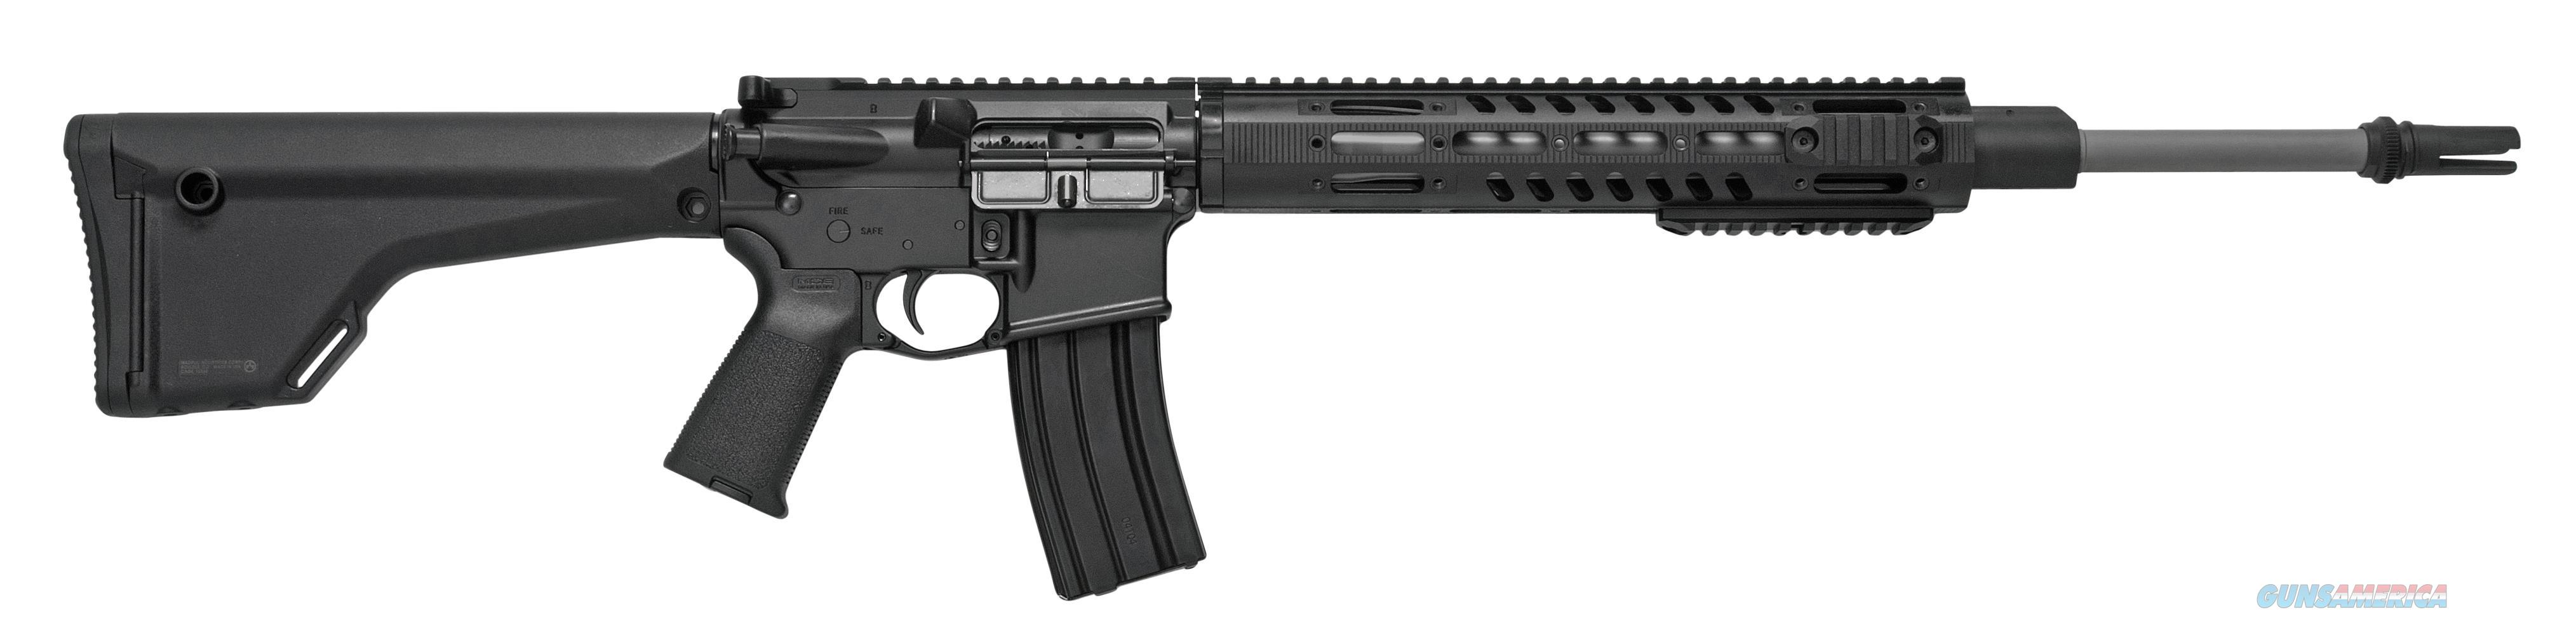 "Dpms 60546 Tpr (Tatical Precision Rifle) Enhanced Tactical Semi-Automatic 223 Remington/5.56 Nato 20"" 30+1 Magpul Moe Rifle Stock Black Stock Black/Stainless Steel 60546  Guns > Rifles > D Misc Rifles"